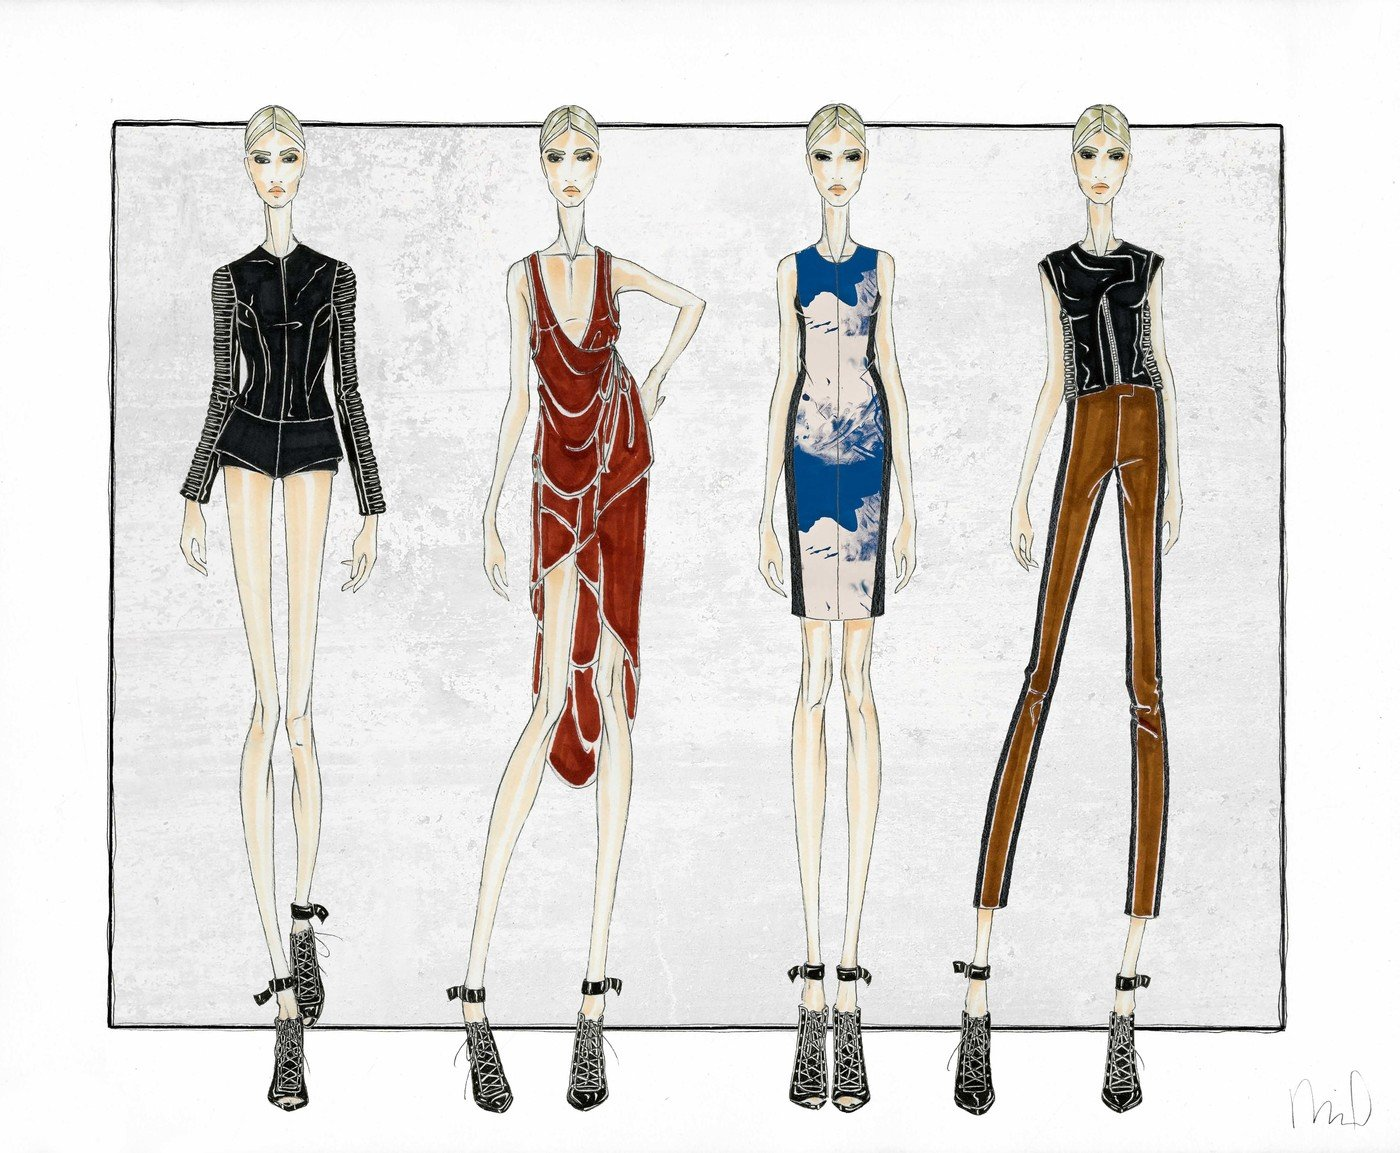 Fashion Design Bauhaus Women S Contemporary Rtw Concept By Miranda Traczyk At Coroflot Com